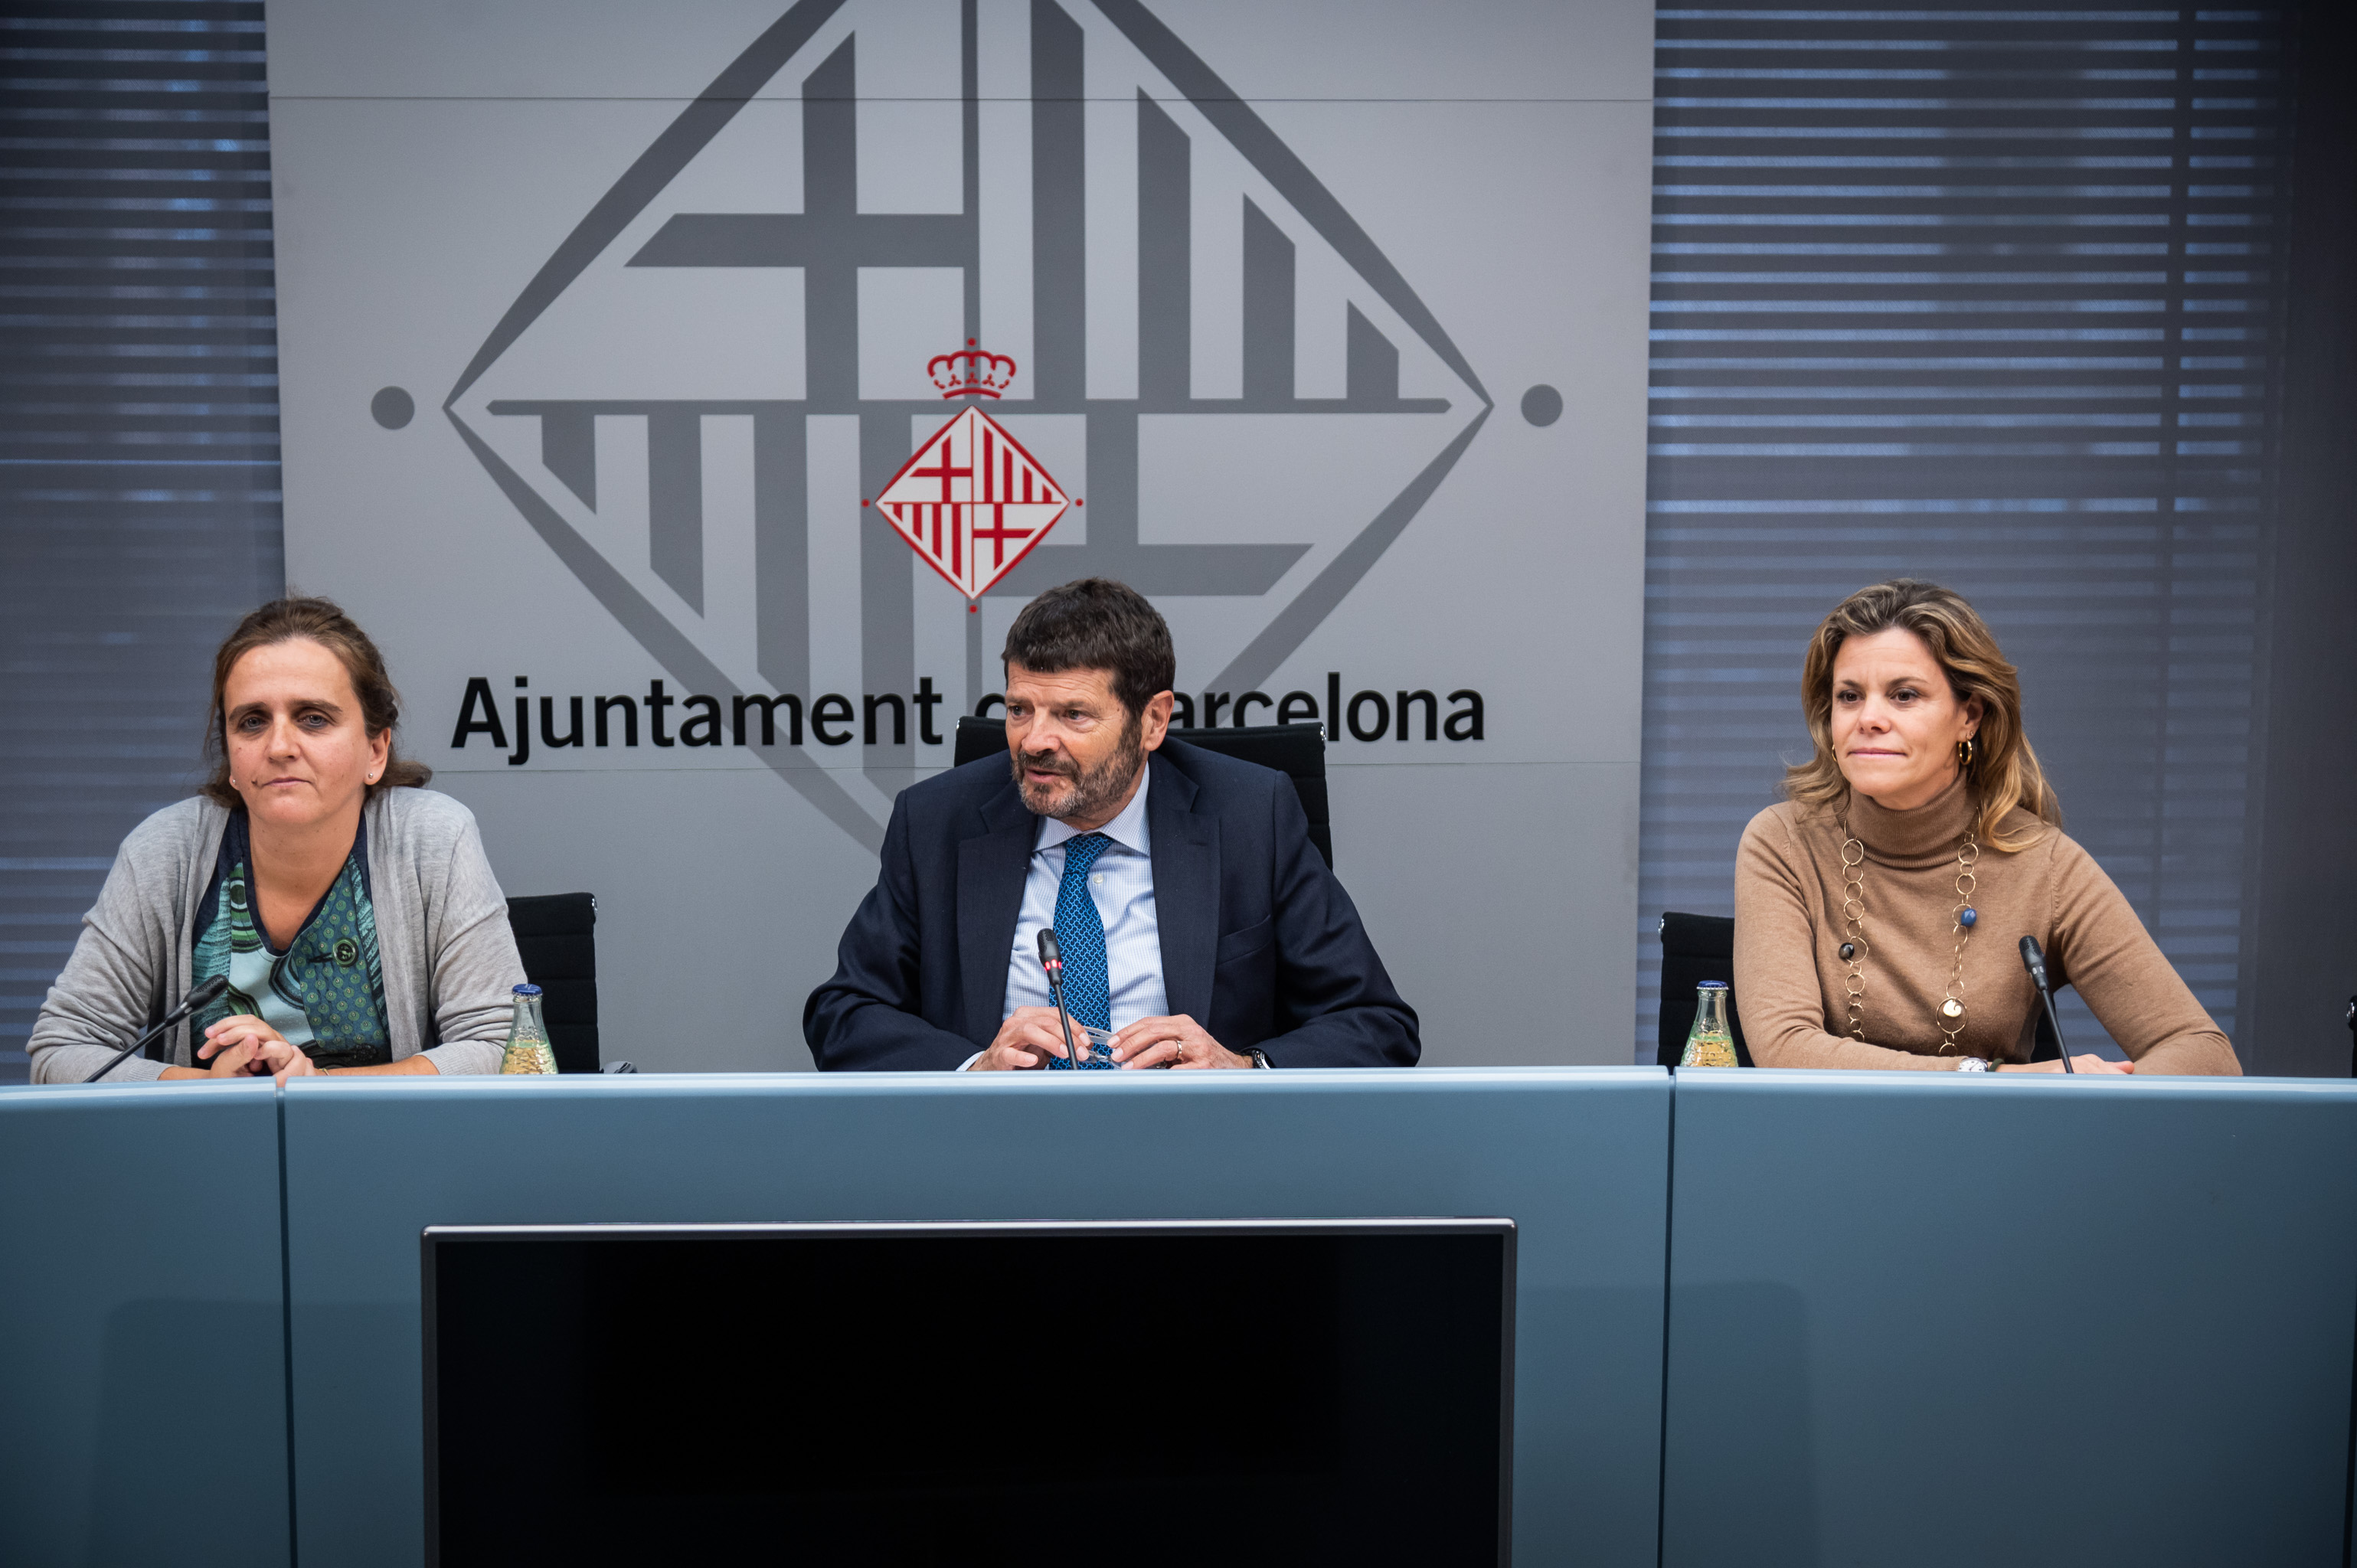 Barcelona City Council and the Abertis Foundation launch the 'El Apagón' campaign to raise awareness among young drivers of the dangers of drinking and driving this Christmas